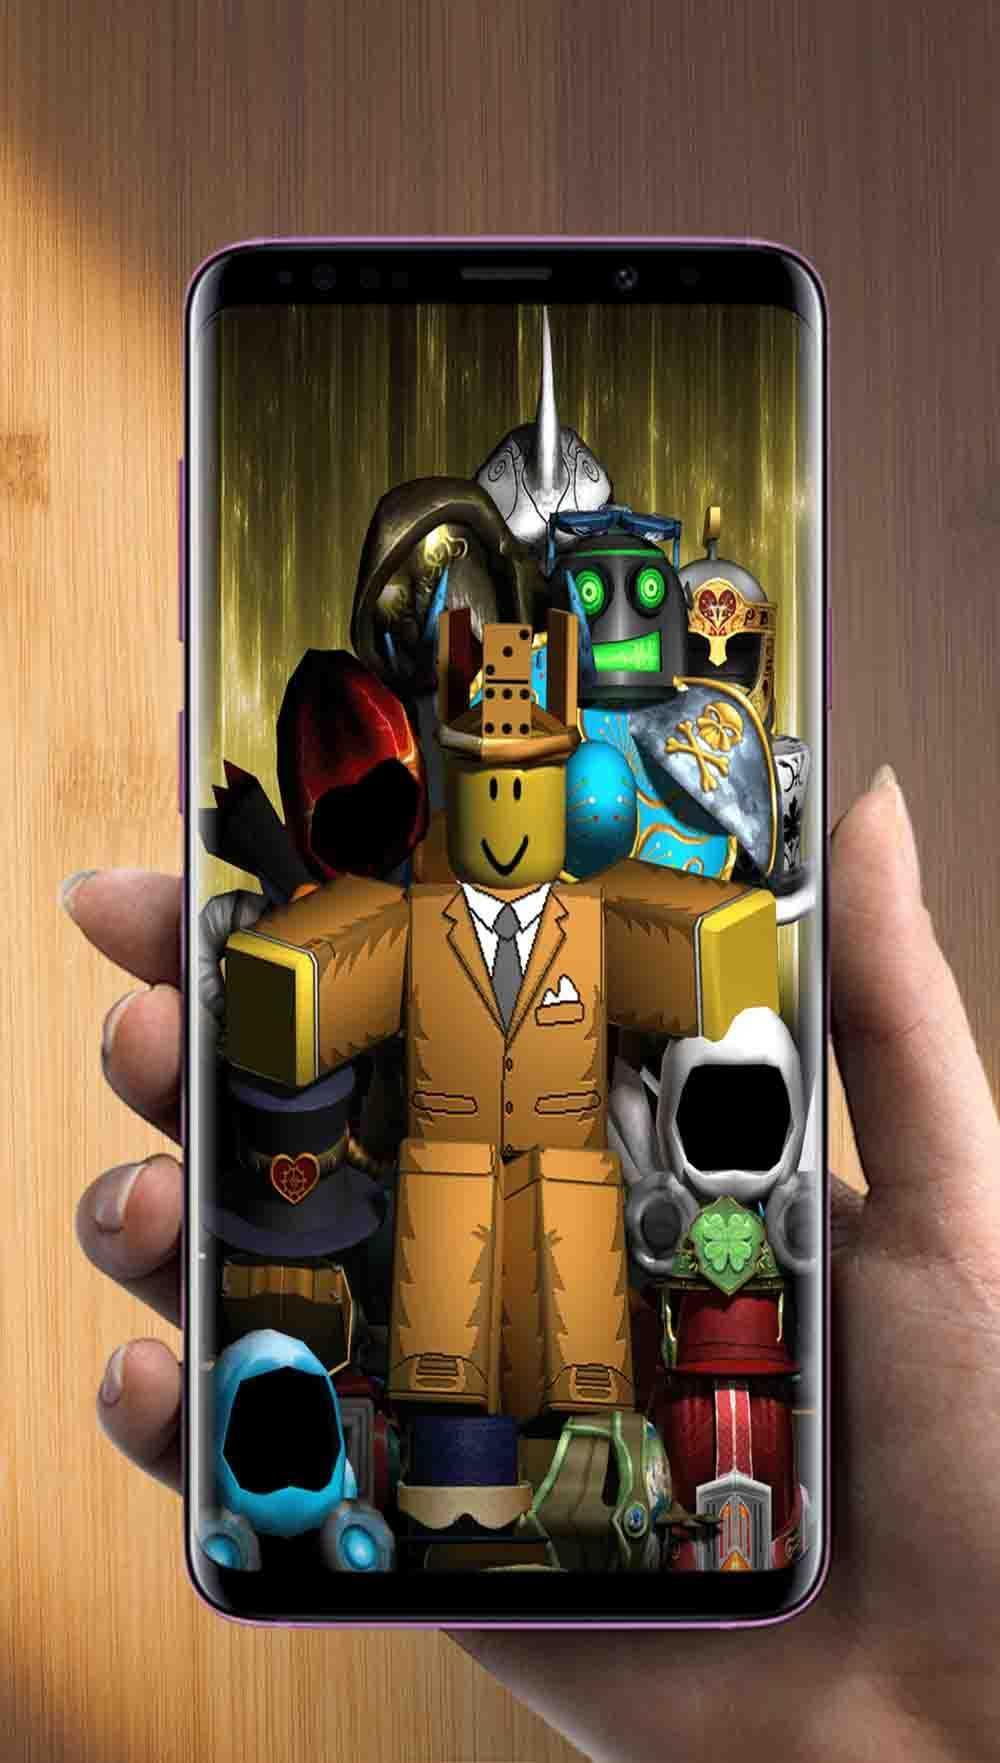 Roblox Robot Wallpapers Posted By Zoey Tremblay